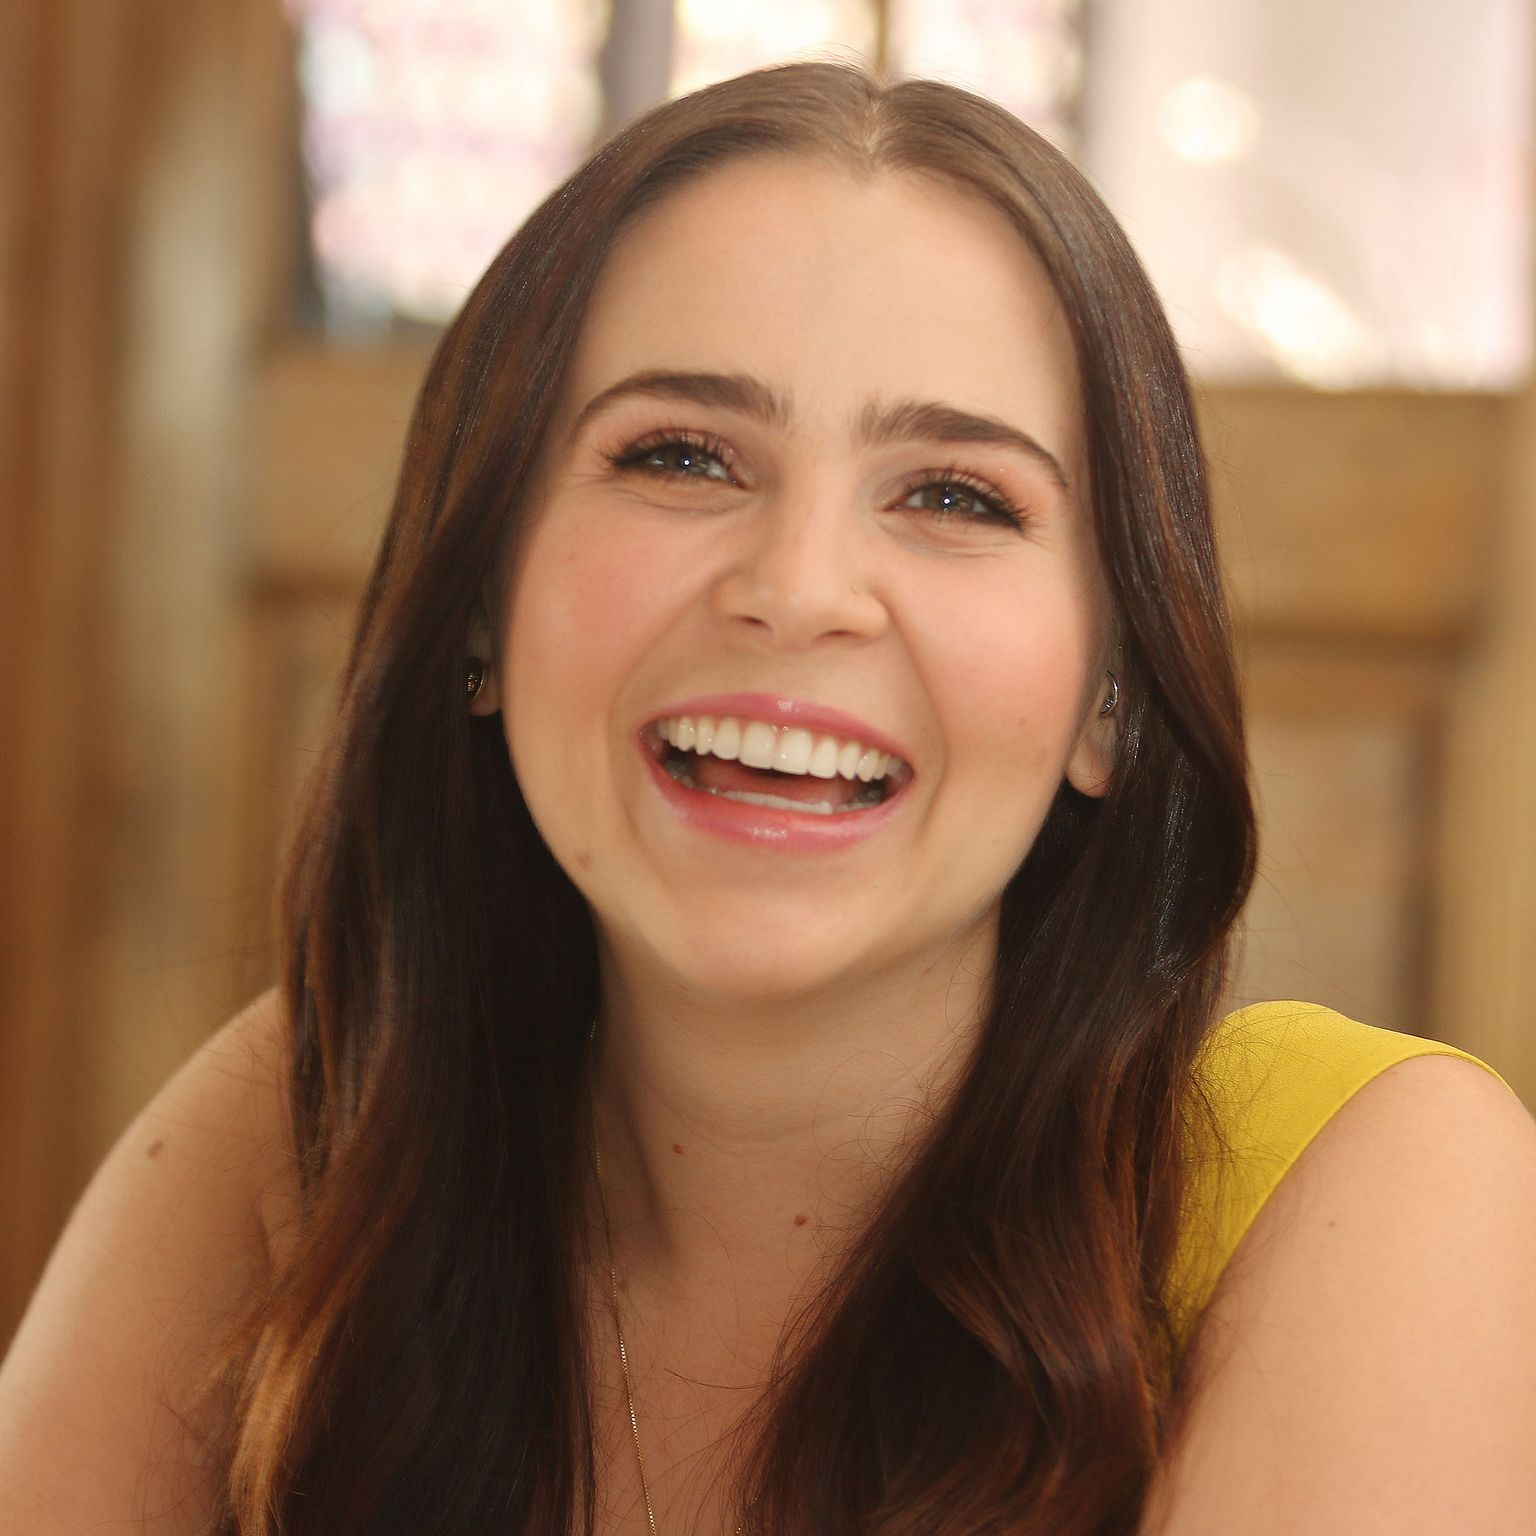 Mae Whitman hd